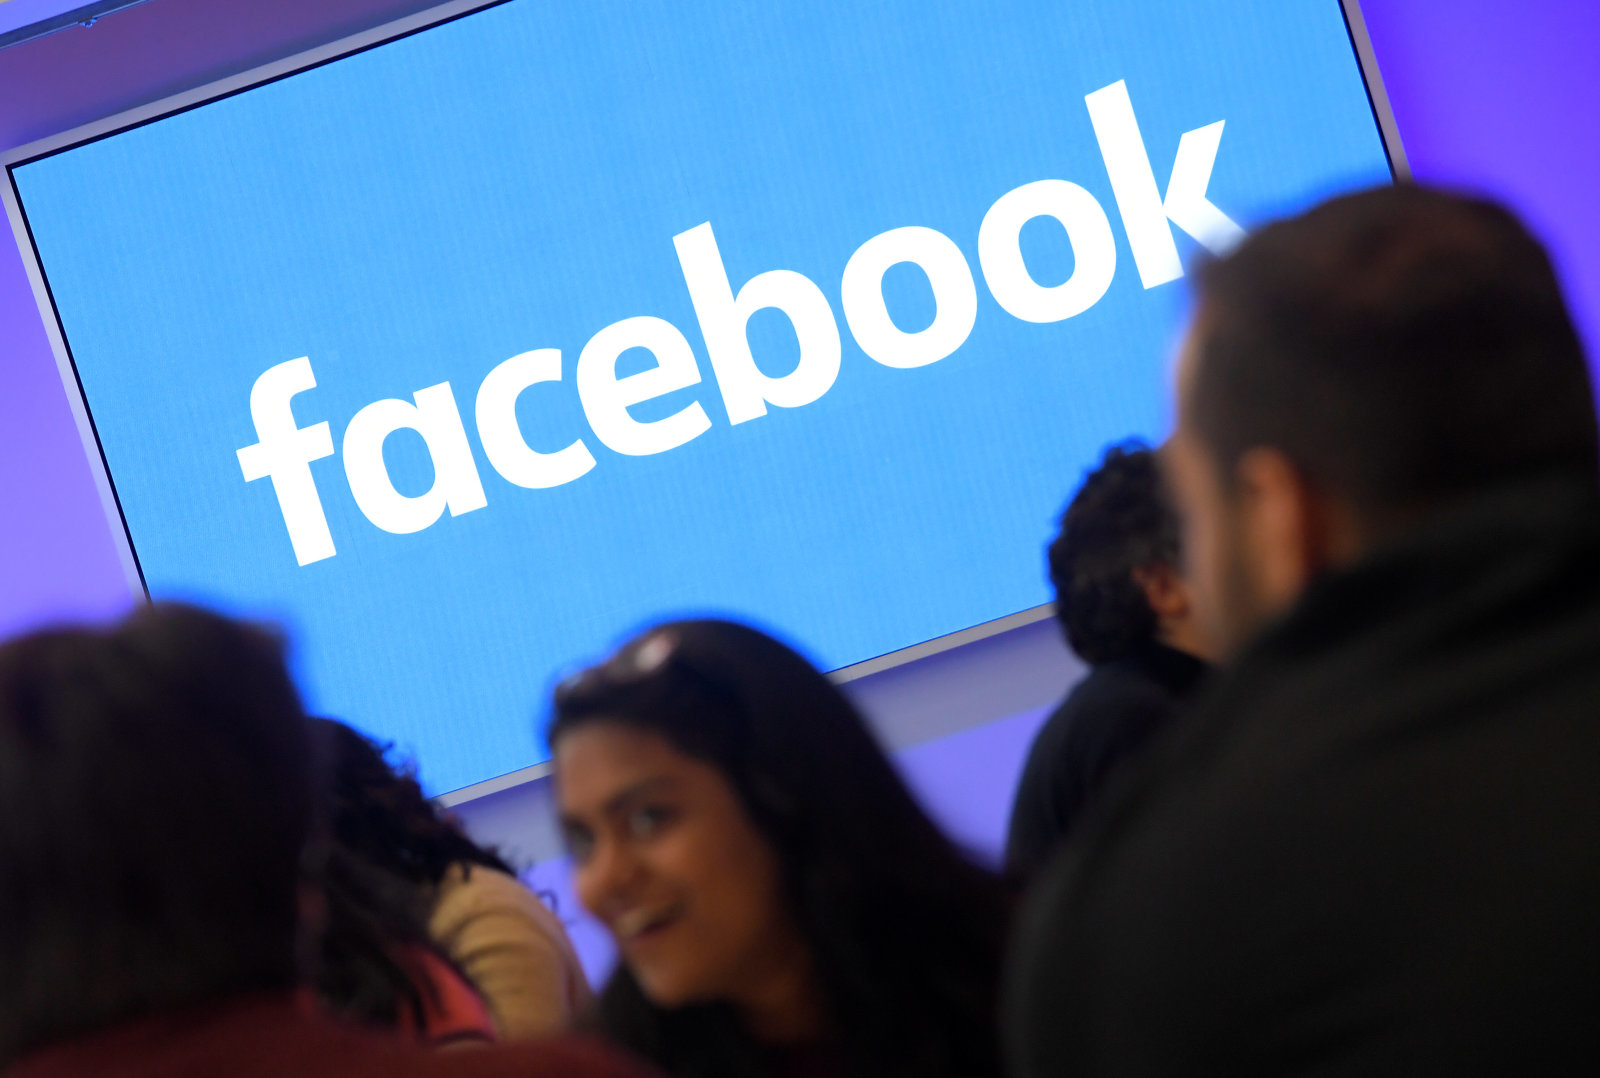 People stand in front of a logo at Facebook's headquarters in London, Britain, December 4, 2017. REUTERS/Toby Melville